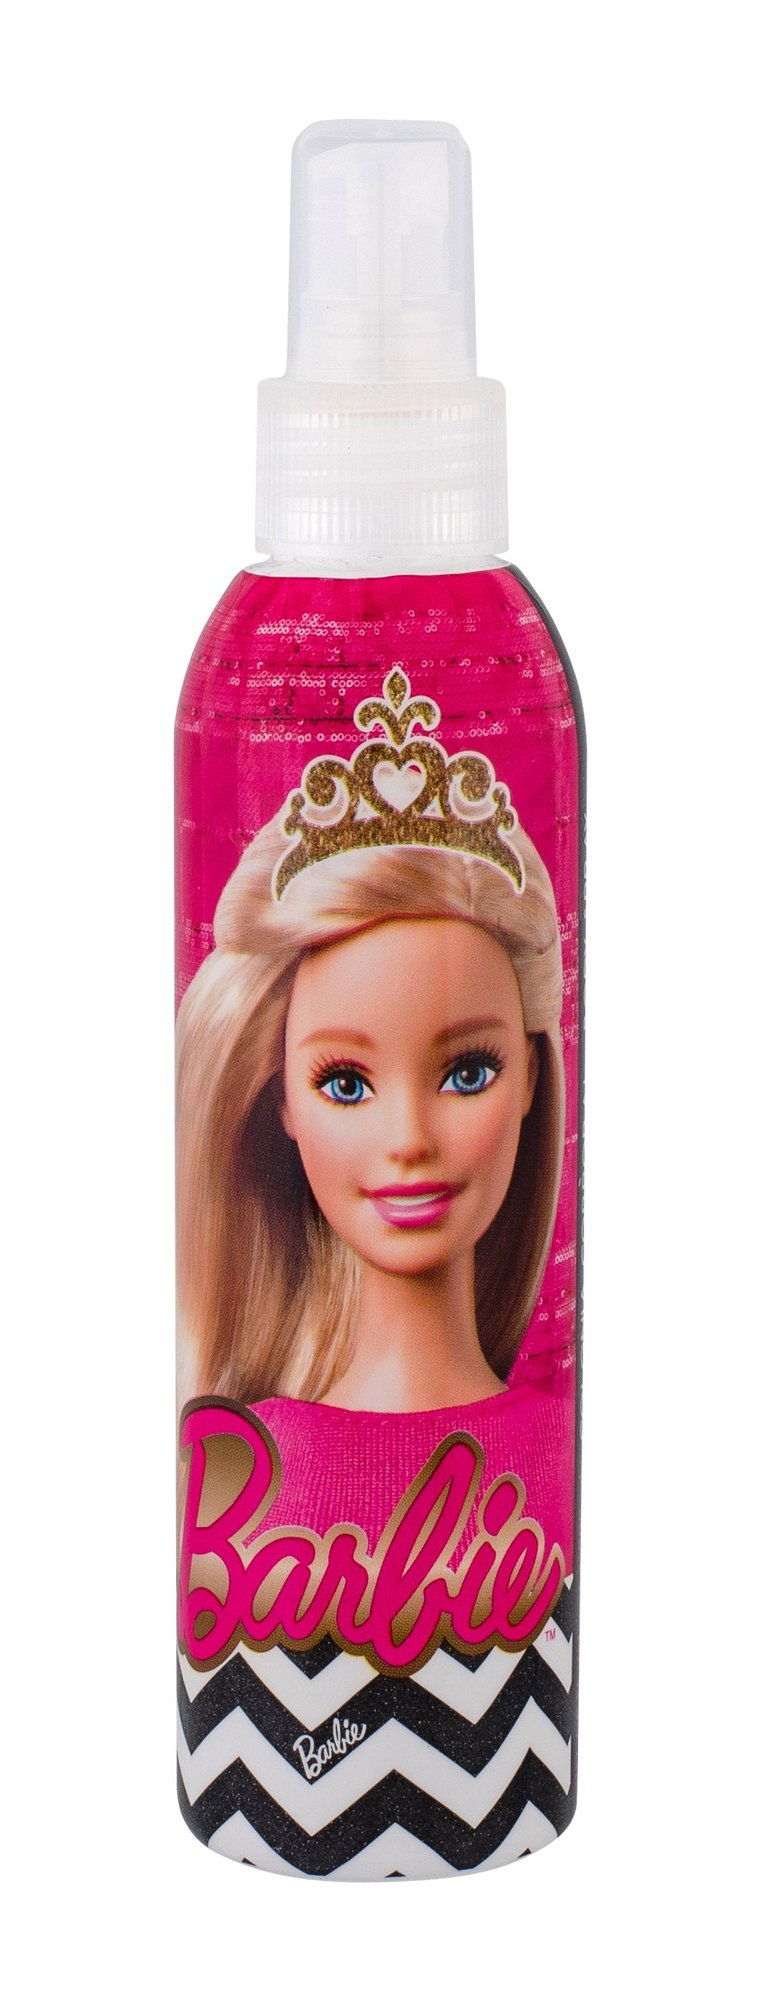 Barbie Barbie Body Spray 200ml